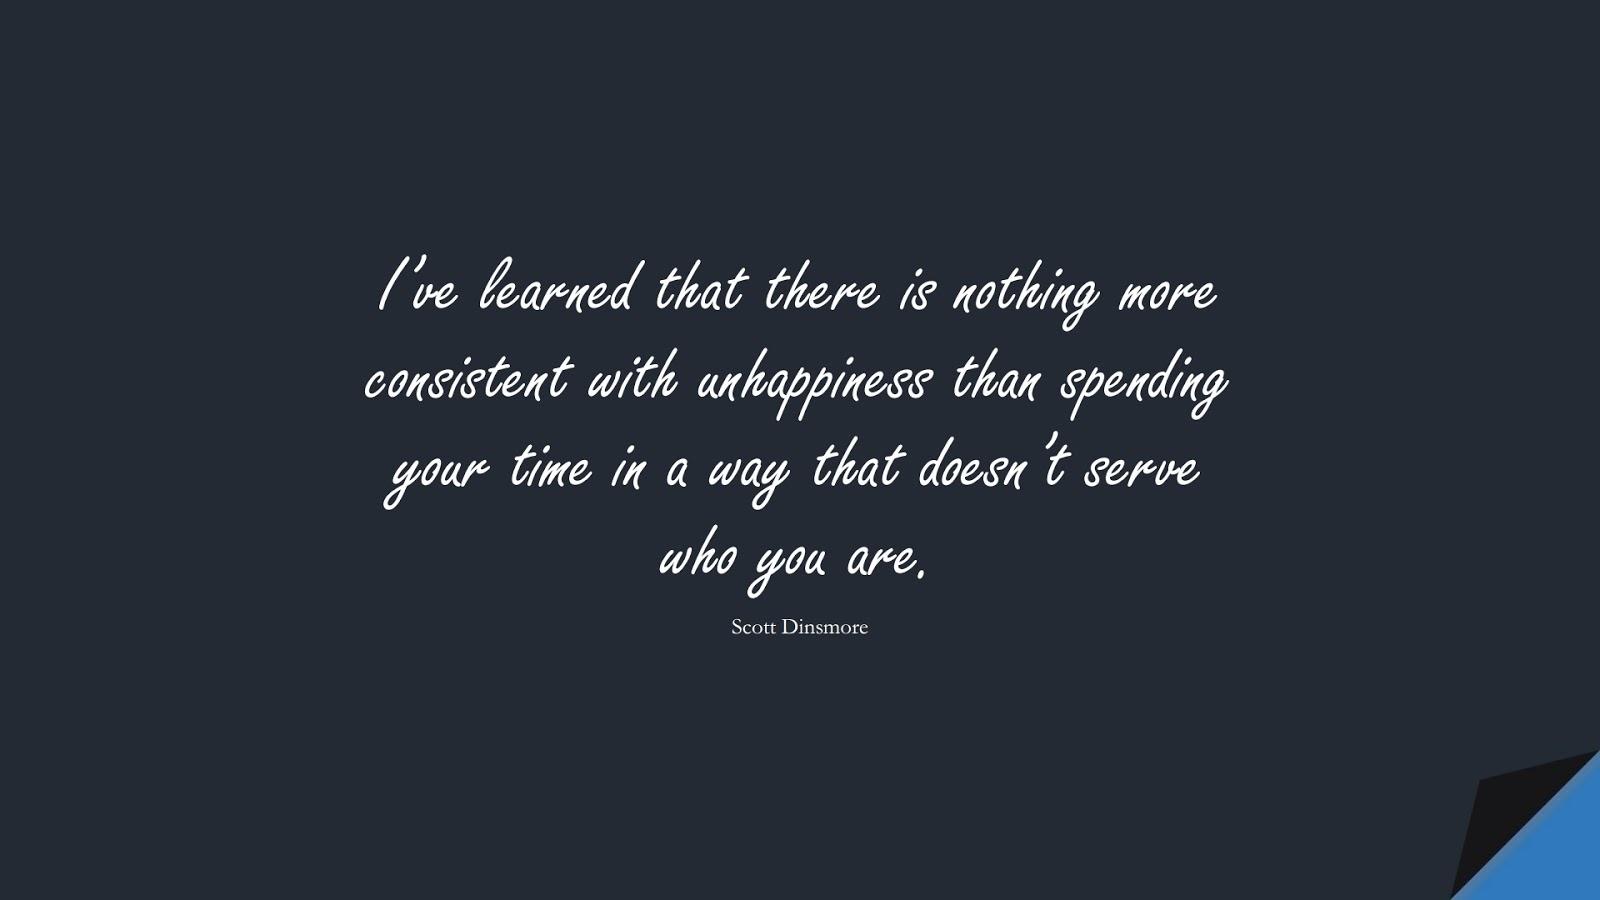 I've learned that there is nothing more consistent with unhappiness than spending your time in a way that doesn't serve who you are. (Scott Dinsmore);  #BeYourselfQuotes